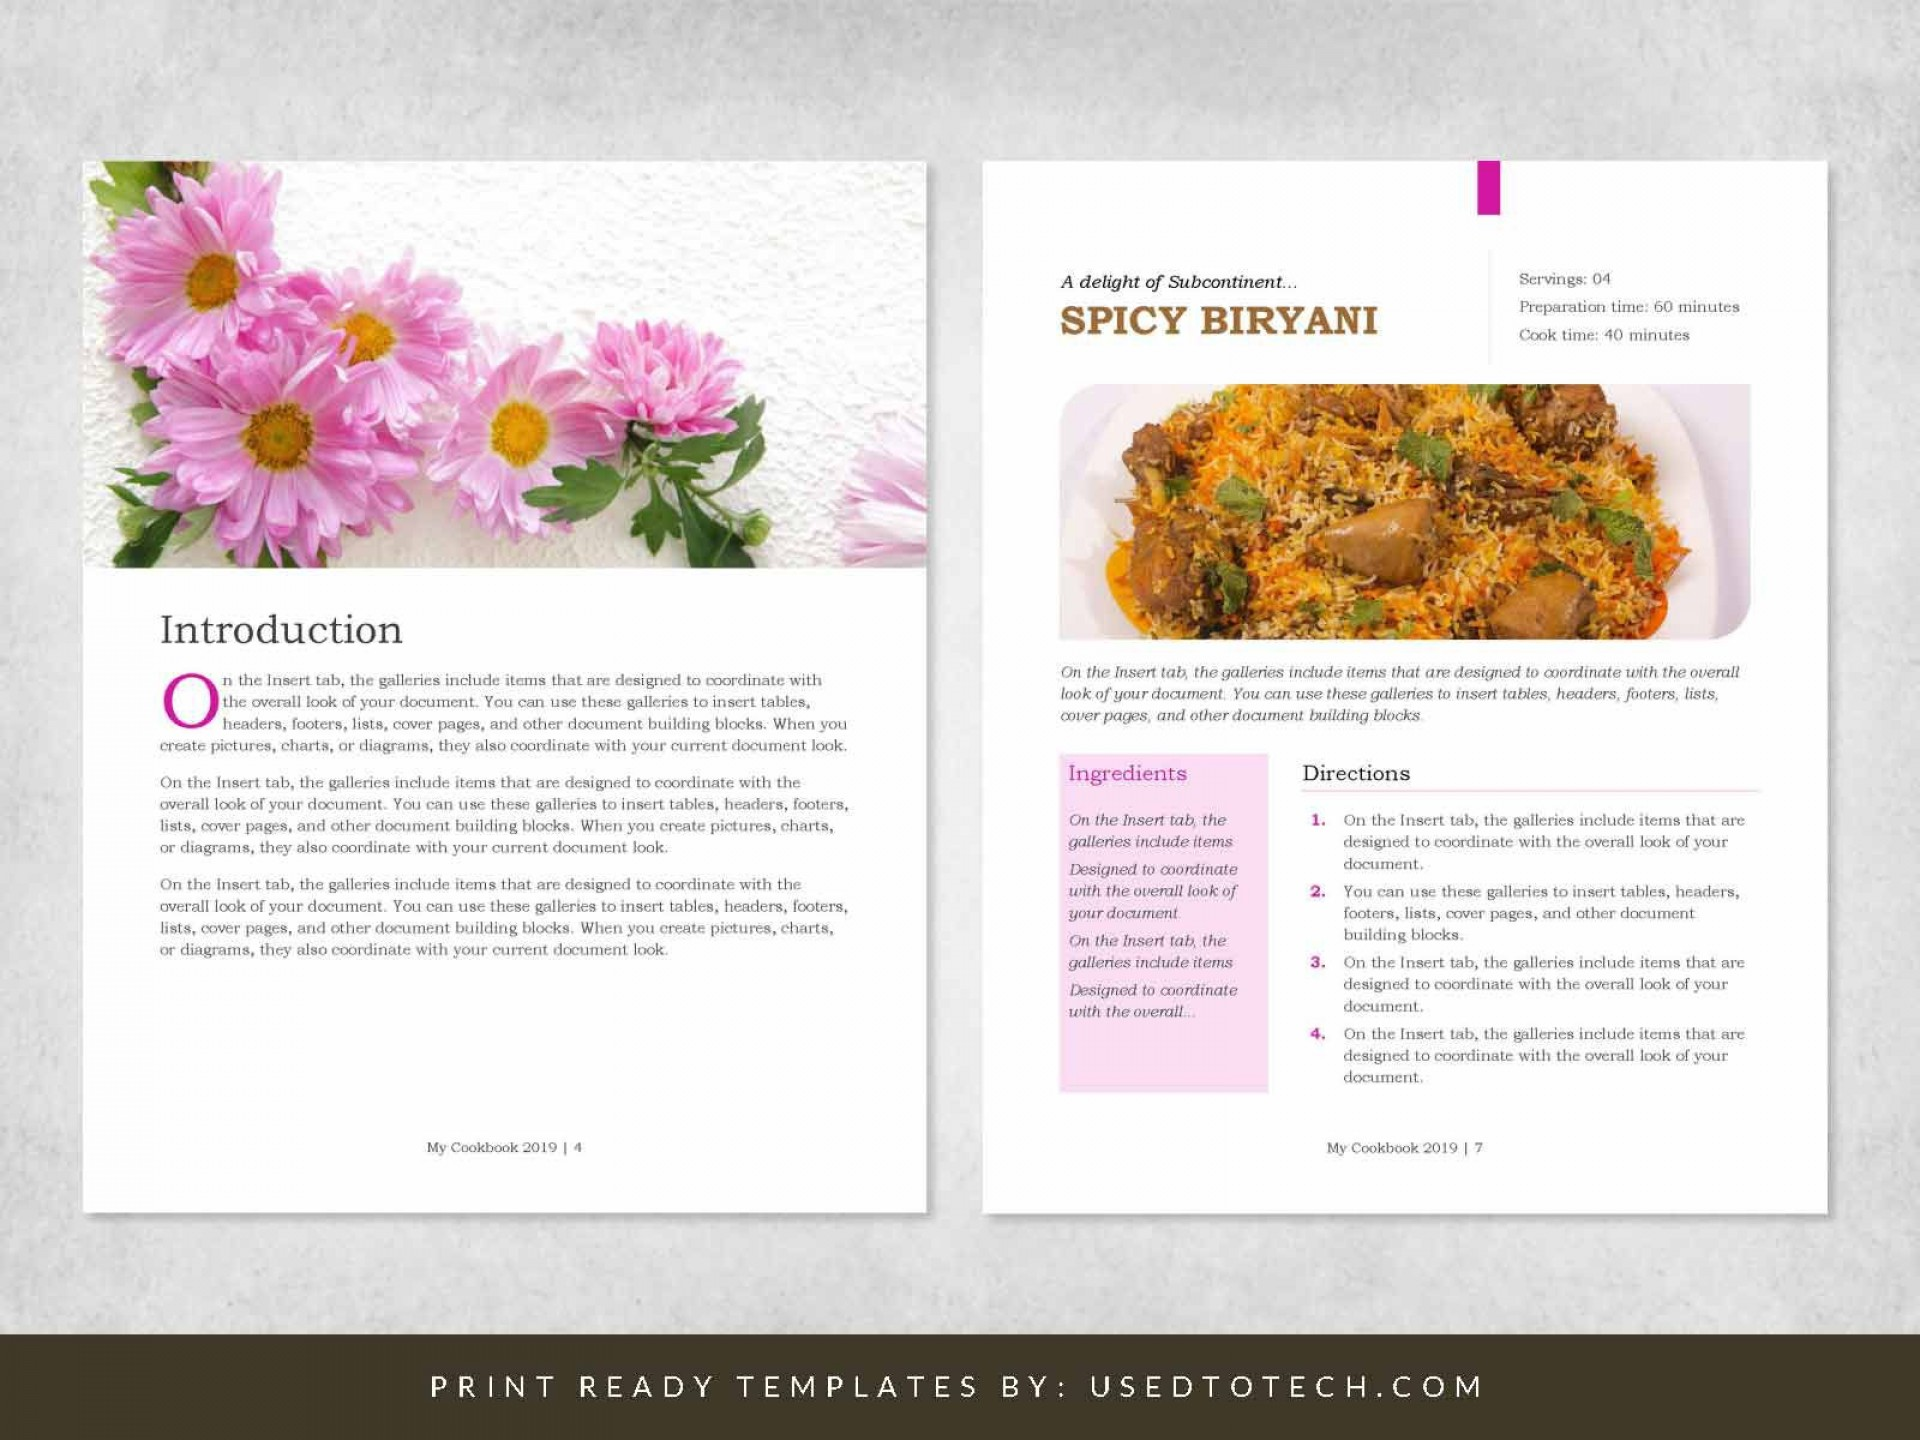 000 Fascinating Make Your Own Cookbook Template High Definition  Create Free1920